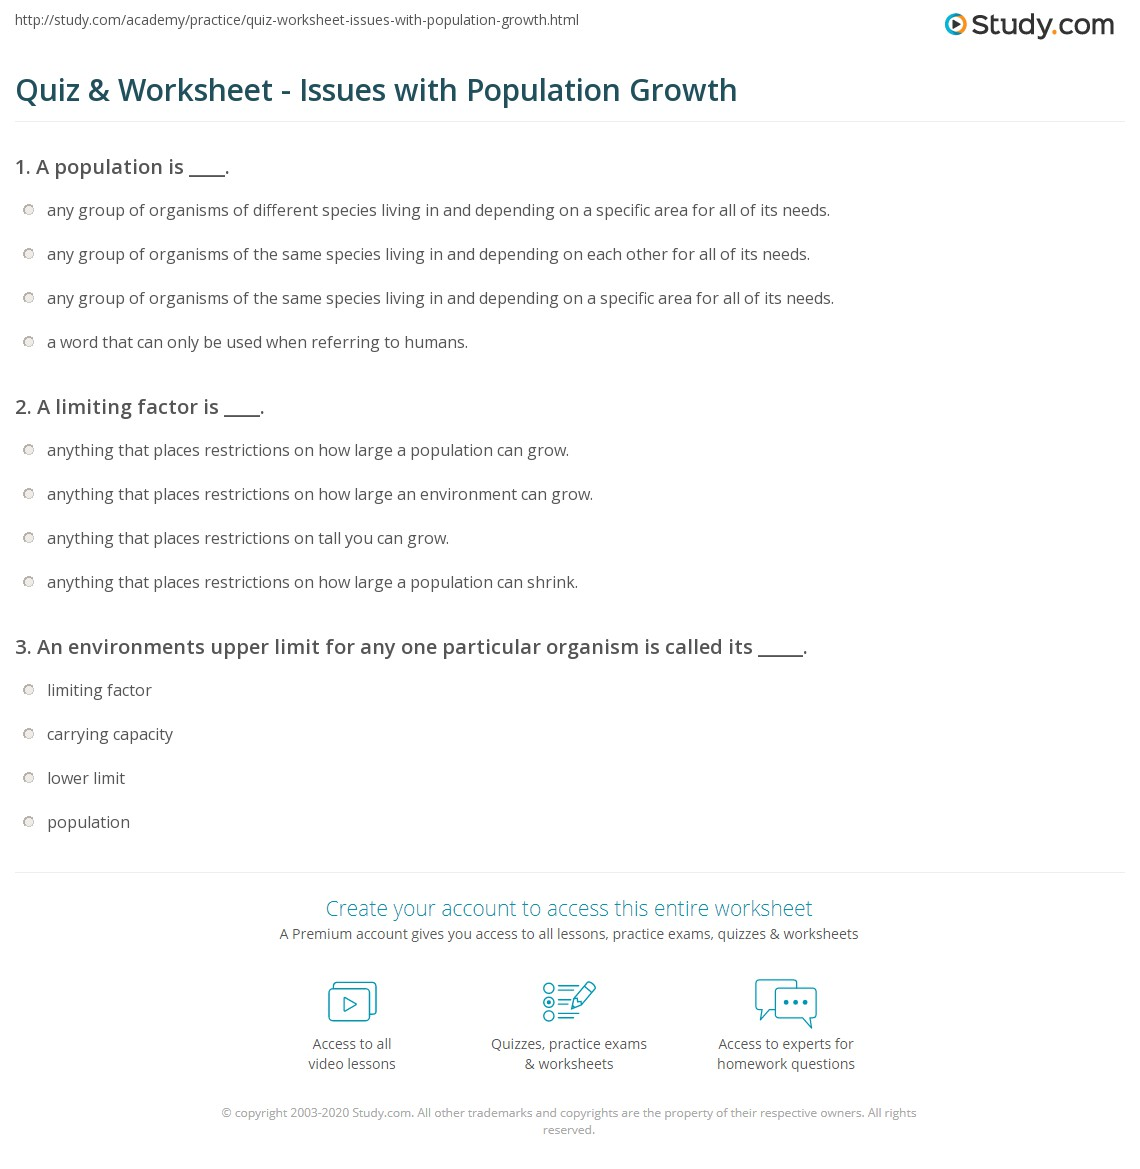 Quiz Worksheet Issues With Population Growth Study Com